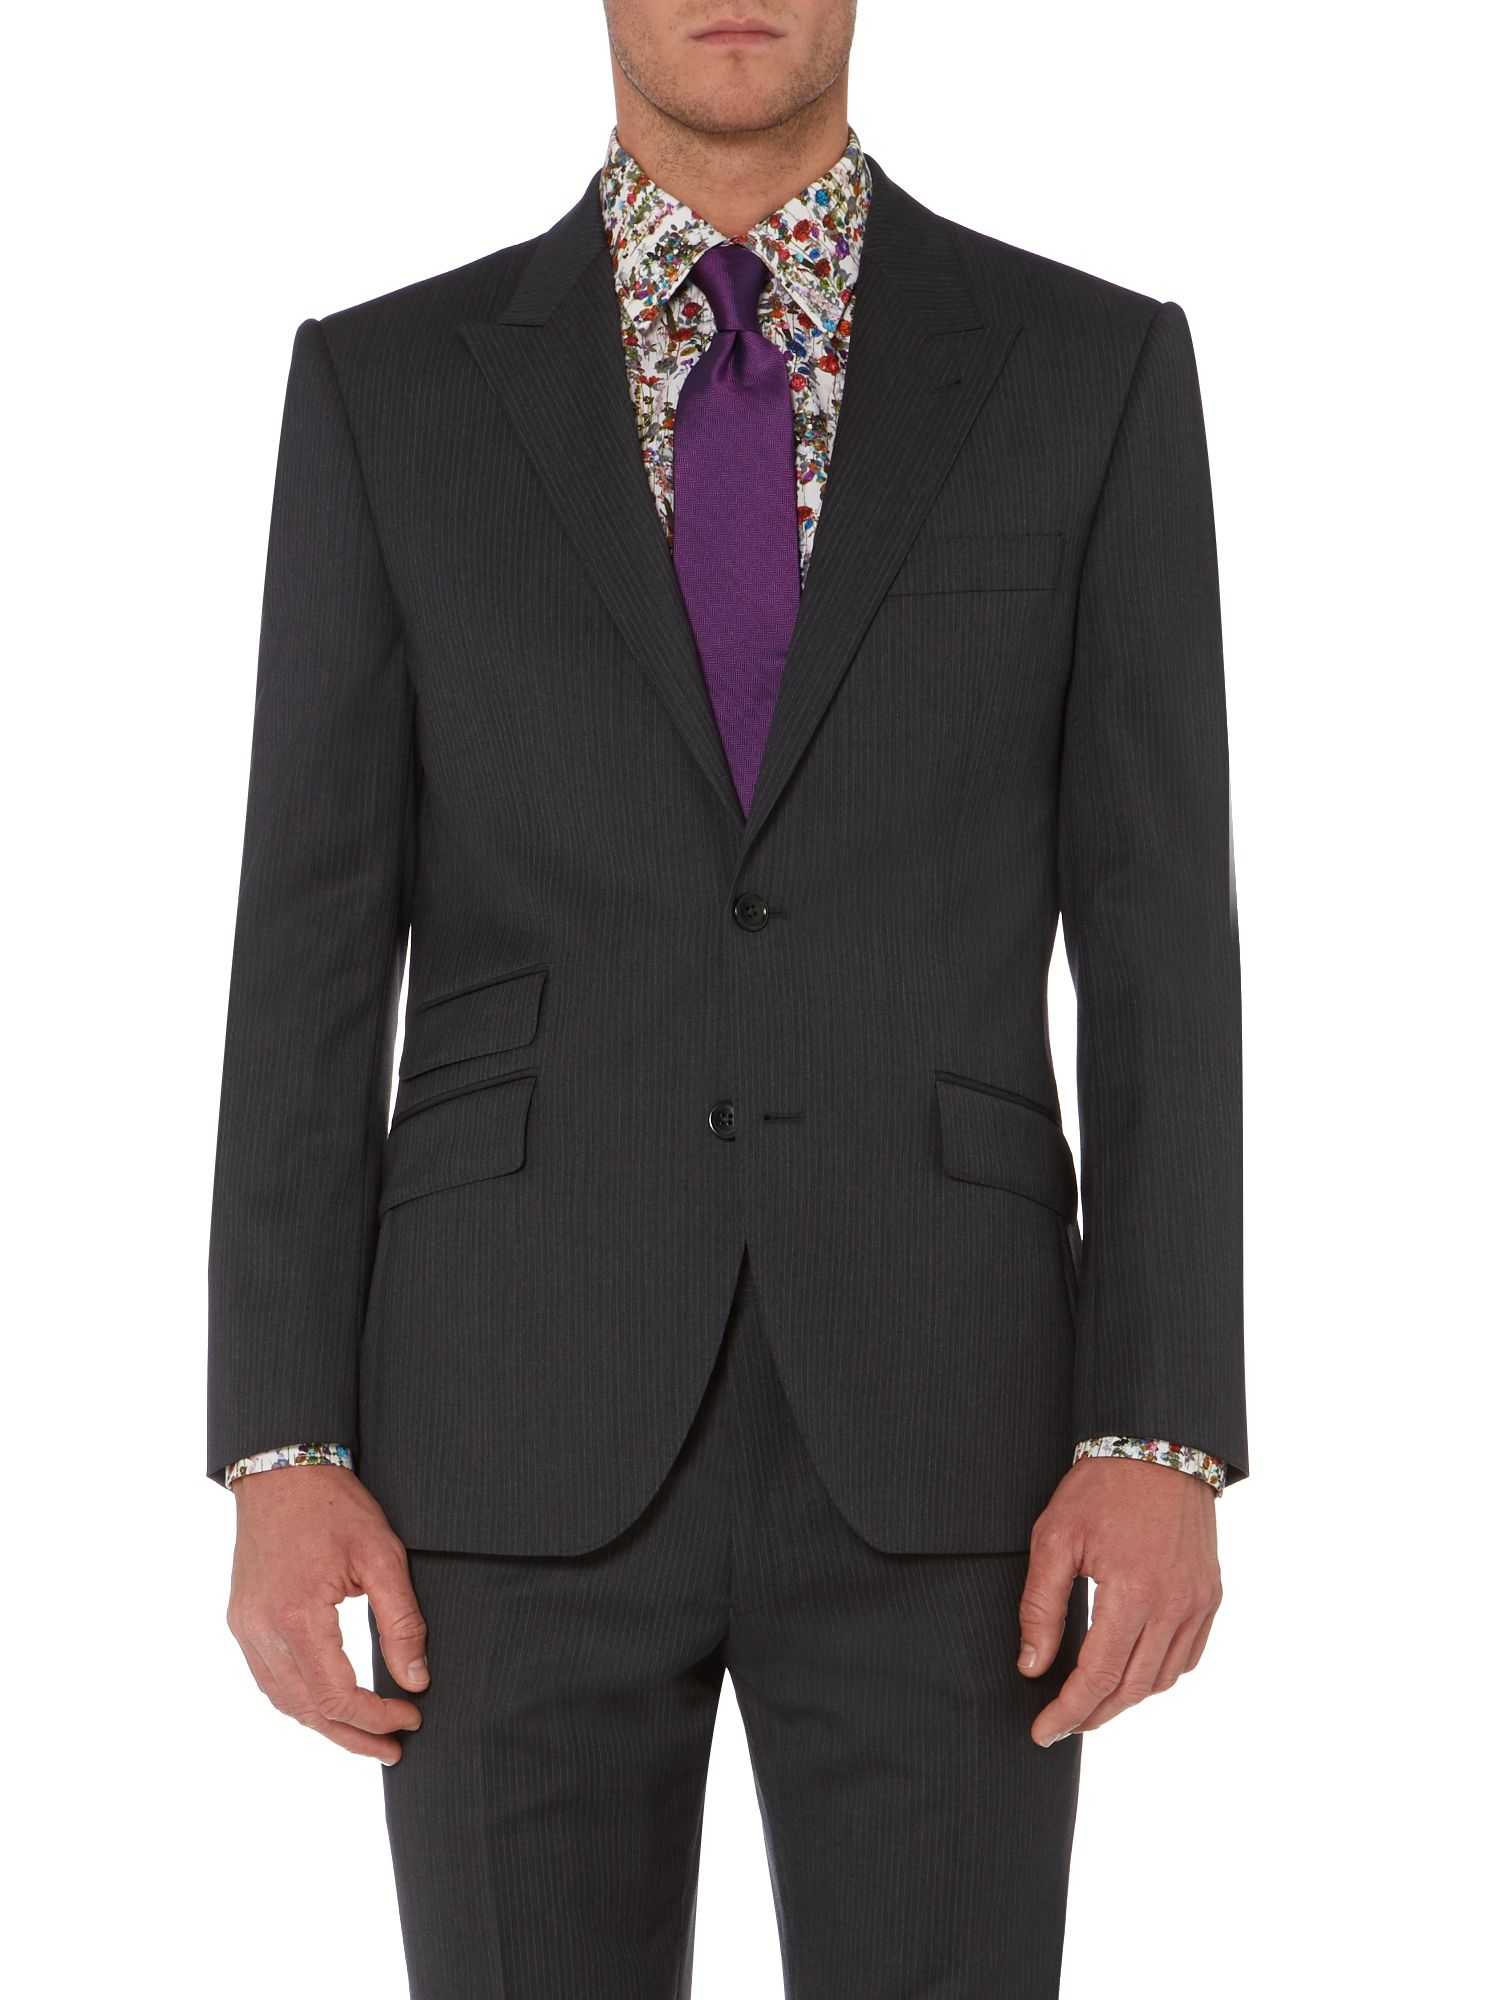 Sultain peak lapel fine stripe suit jacket